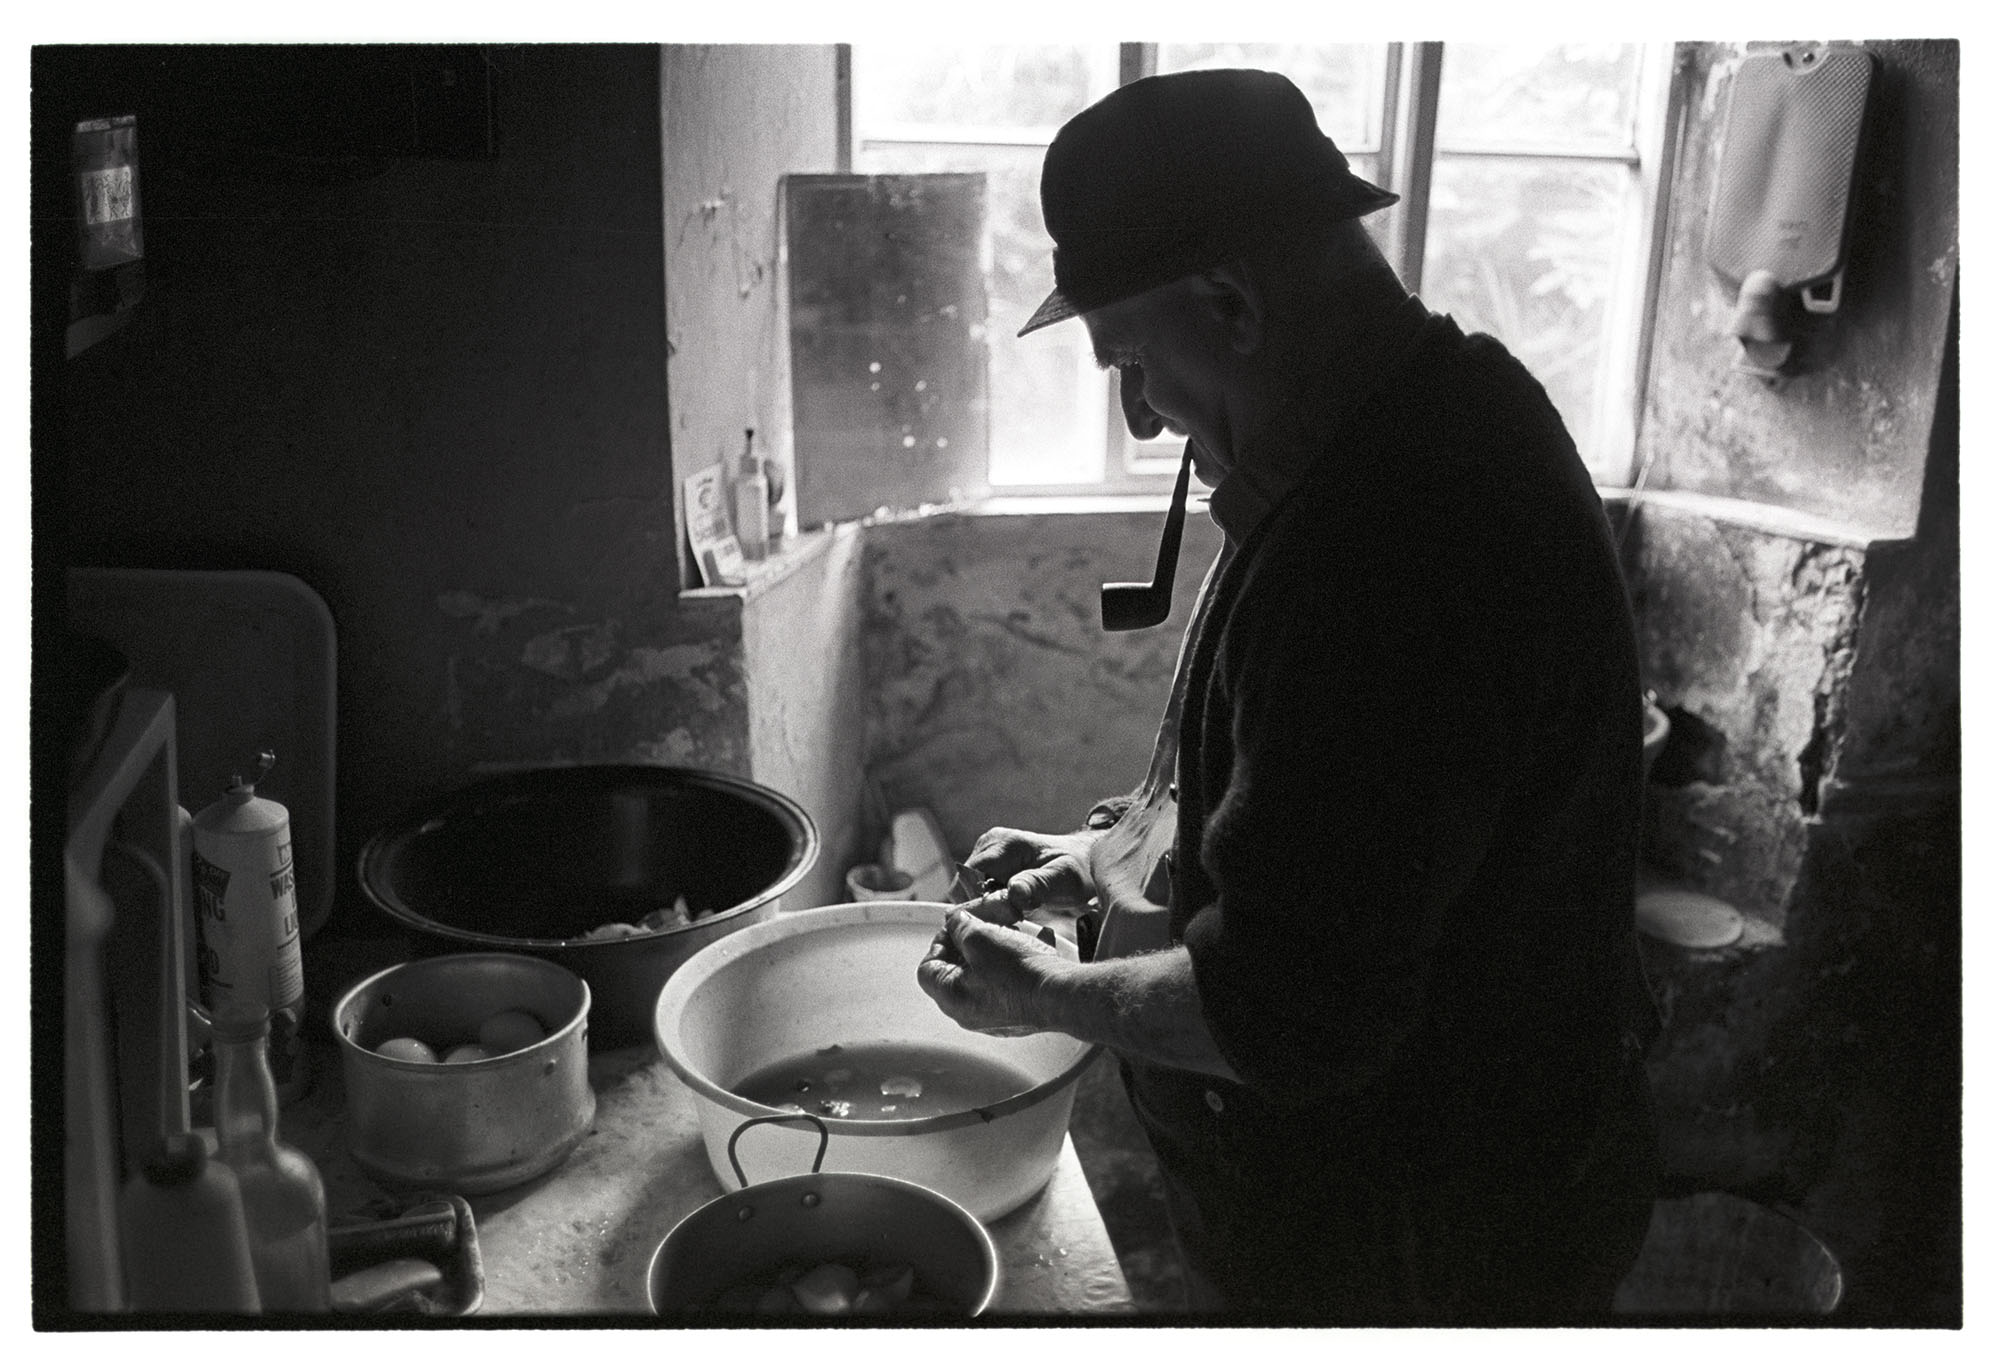 Archie Parkhouse peeling potatoes, Millhams, Dolton, May 1978